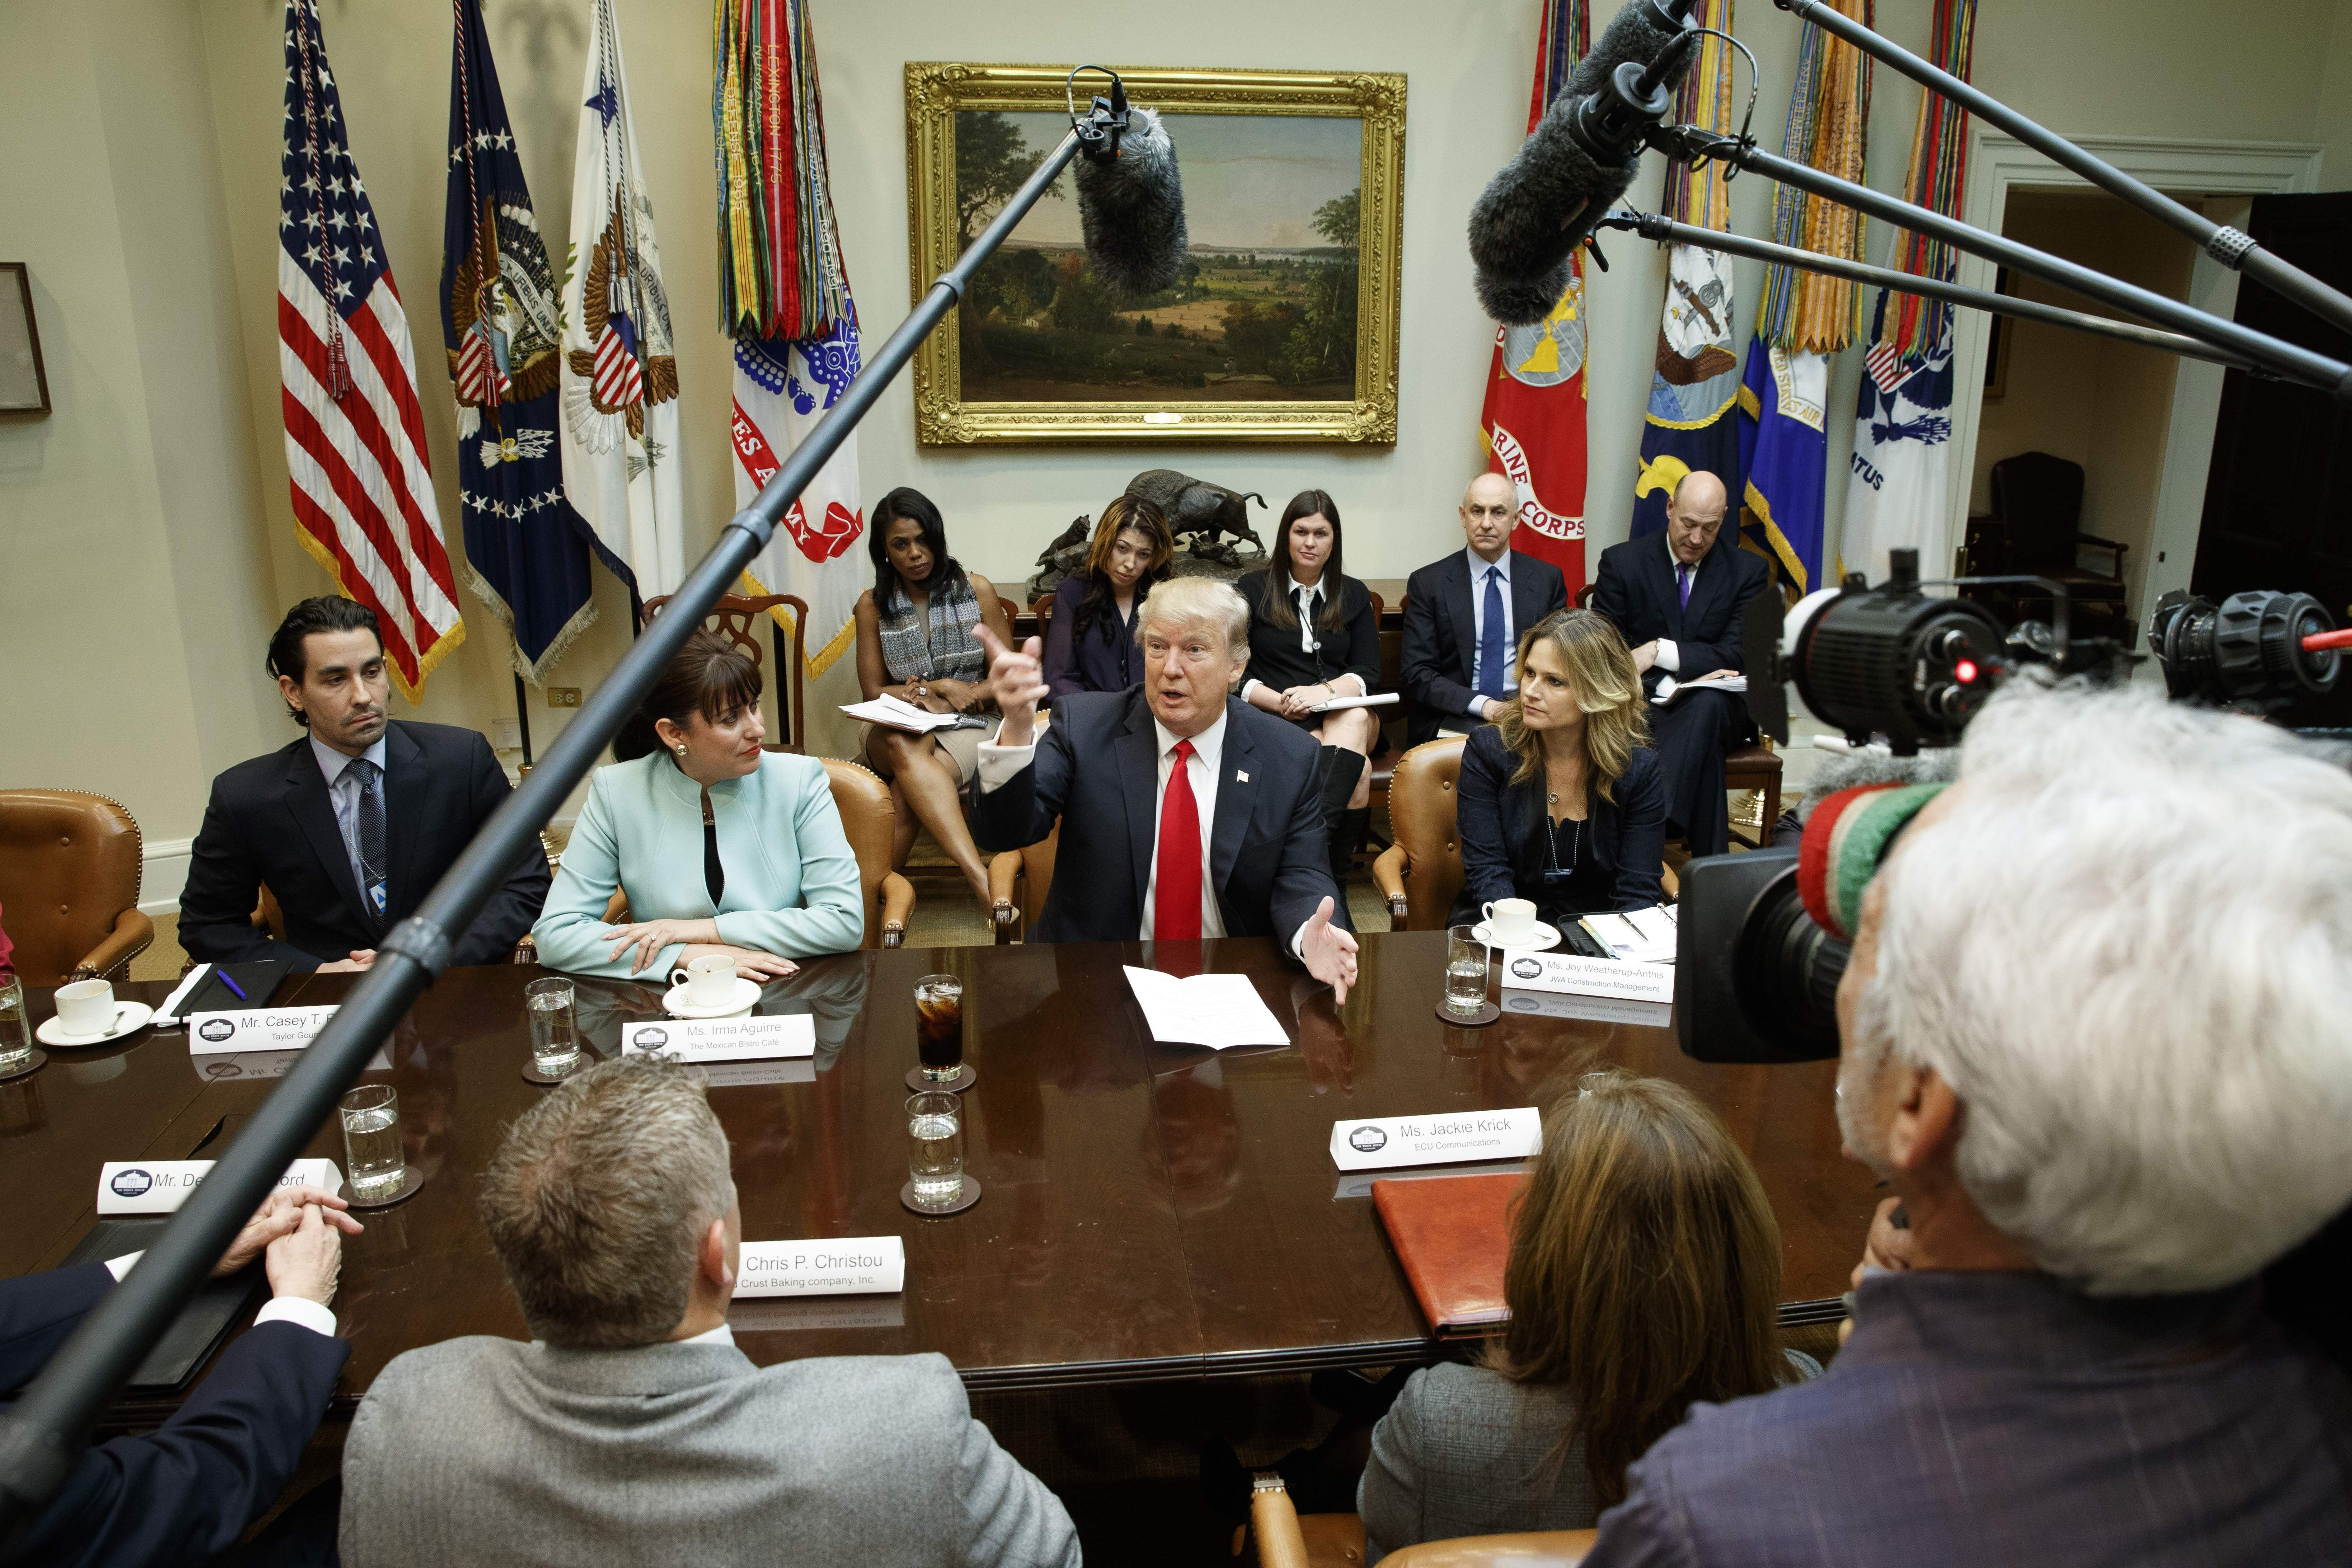 DAY 11 - In this Jan. 30, 2017, file photo, President Donald Trump speaks during a meeting with business leaders in the Roosevelt Room of the White House in Washington. (AP Photo/Evan Vucci, File)